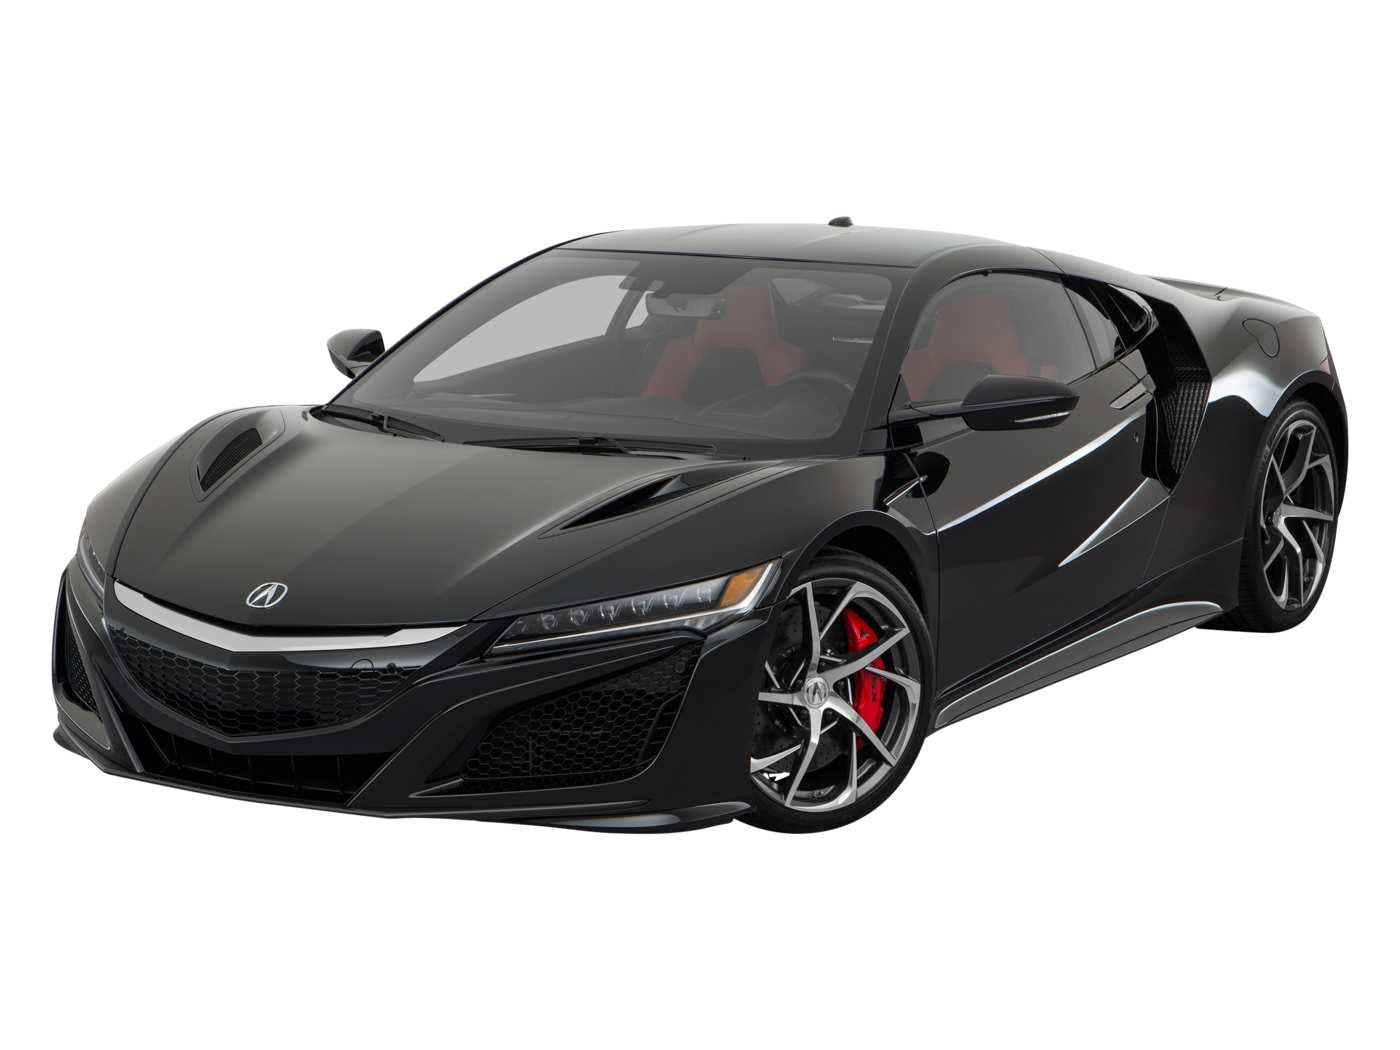 2019 Acura Nsx Prices Reviews Incentives Truecar